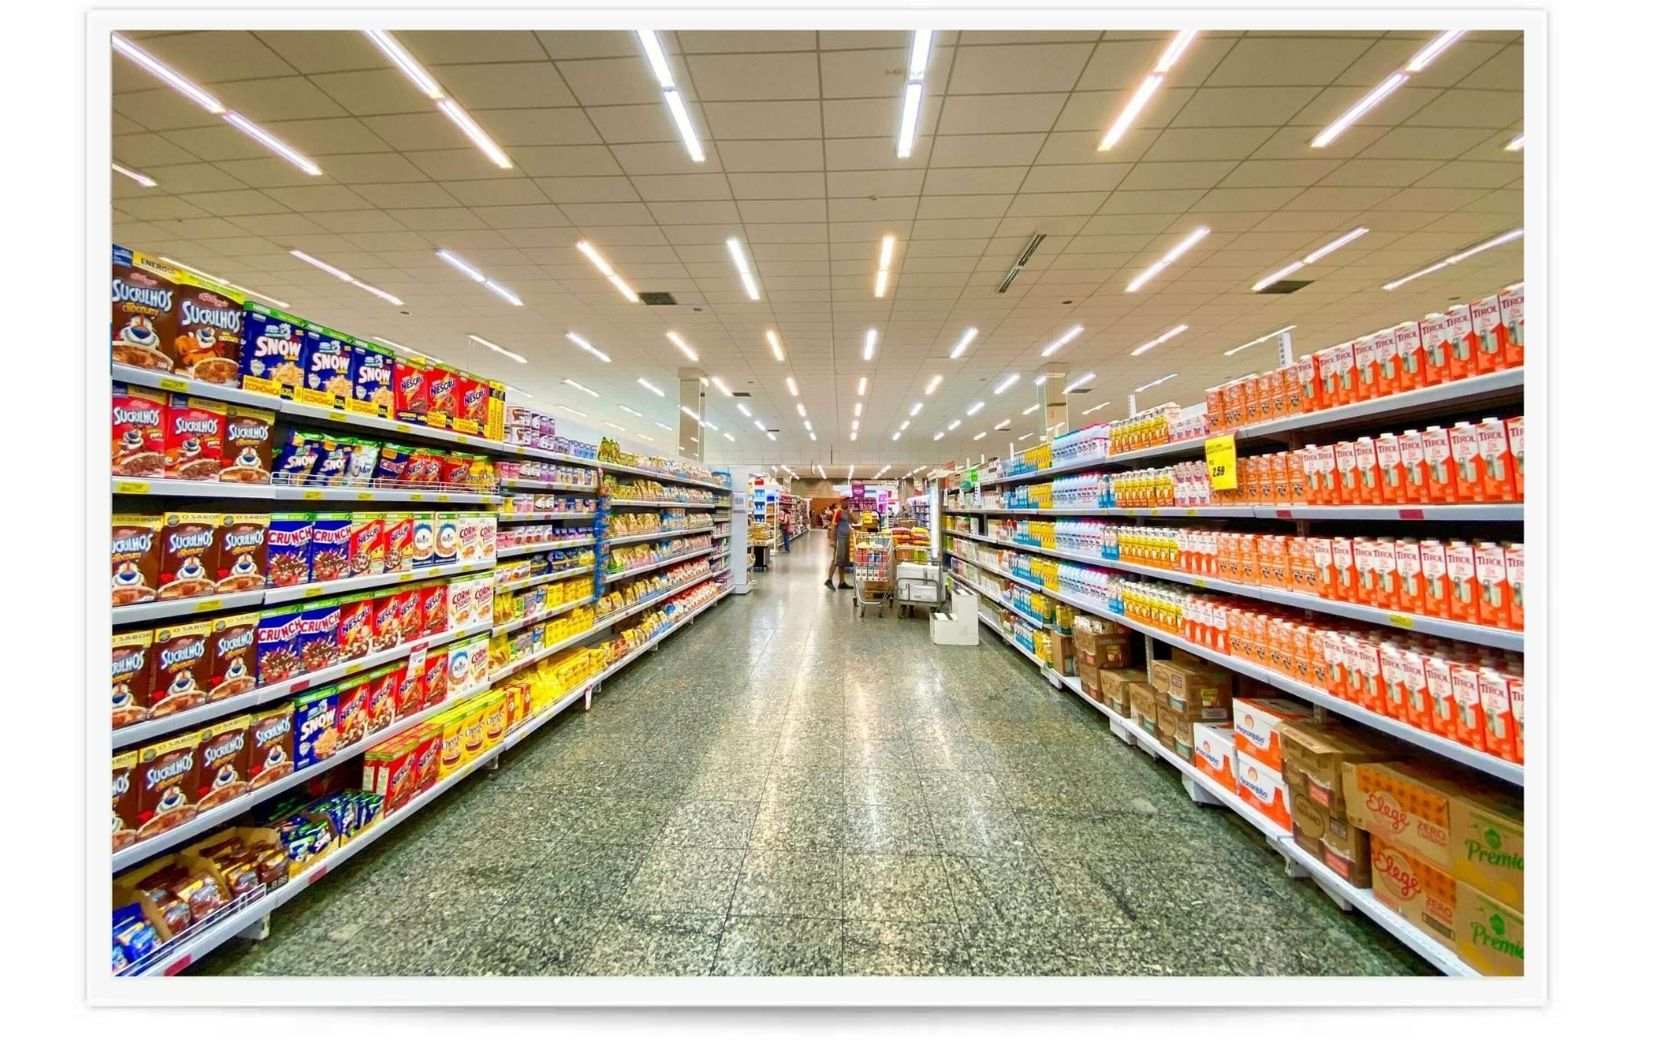 grocery store aisle after a vinyl composition tile cleaning in atlanta